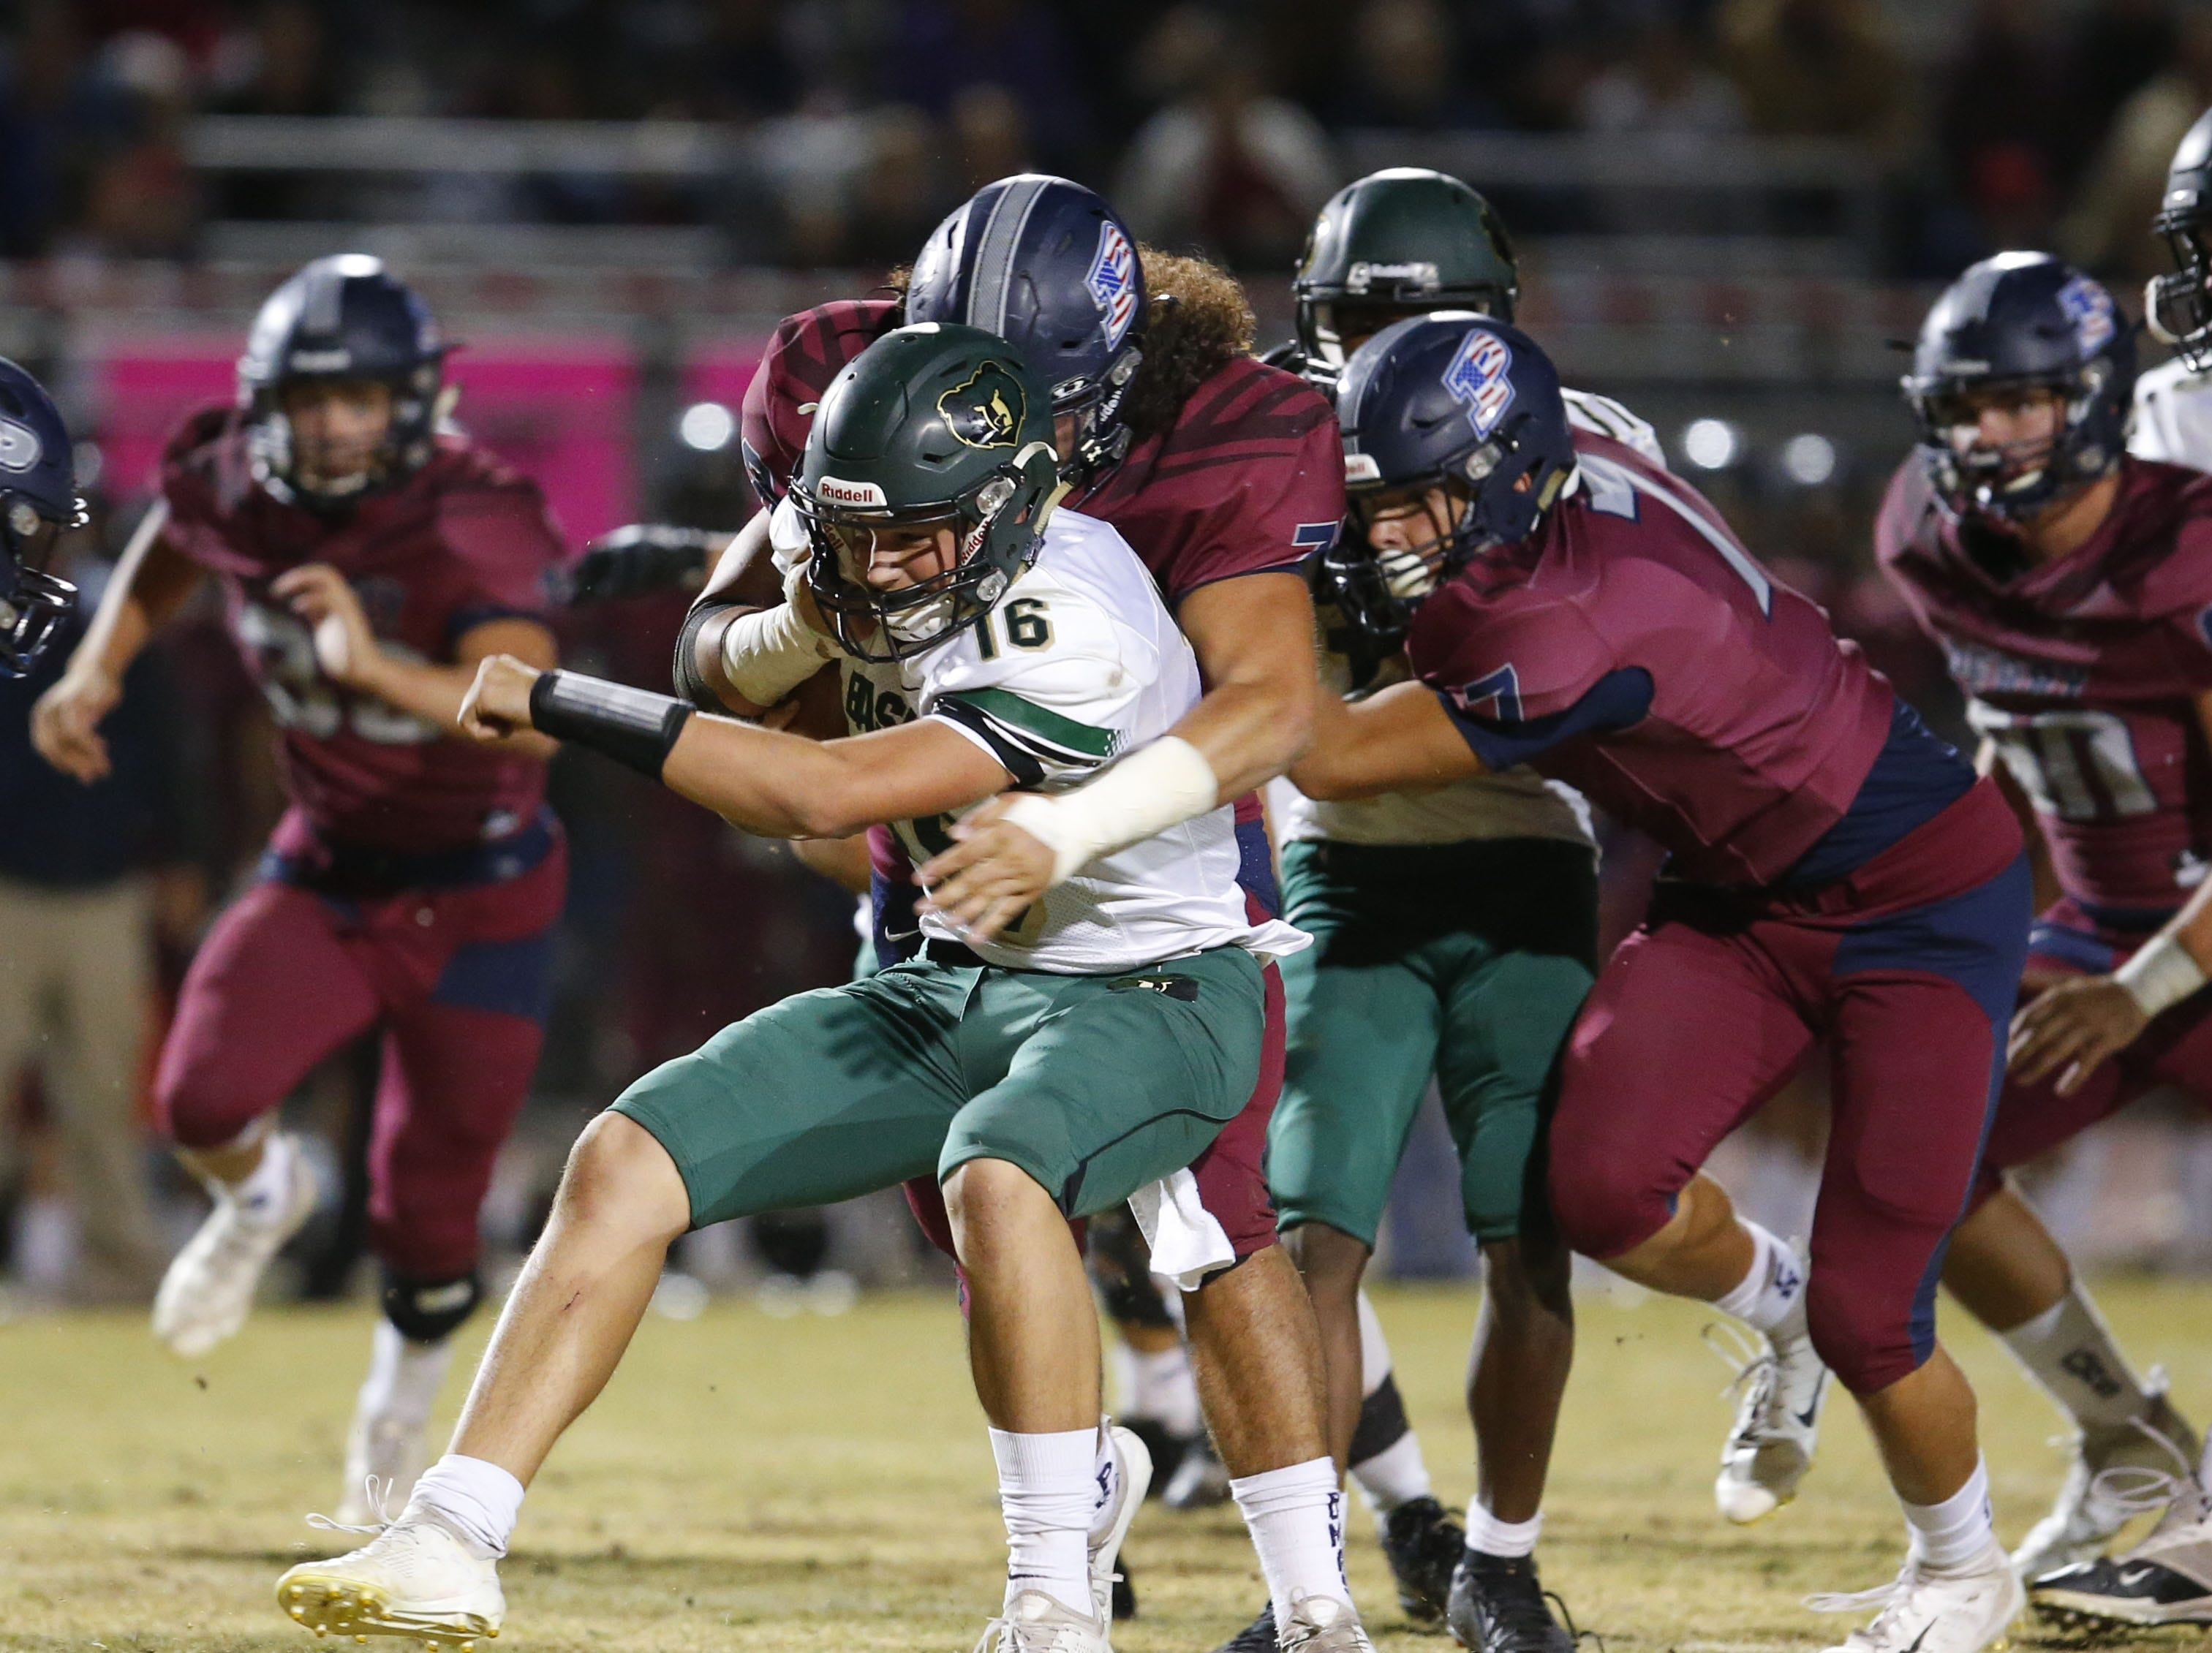 Basha's quarterback Gabe Friend (16) is stopped by Perry Michael Warnick (78) left, and Perry Andrew Moon (7) during a scramble in football game at Perry High School on Nov. 2. #azhsfb